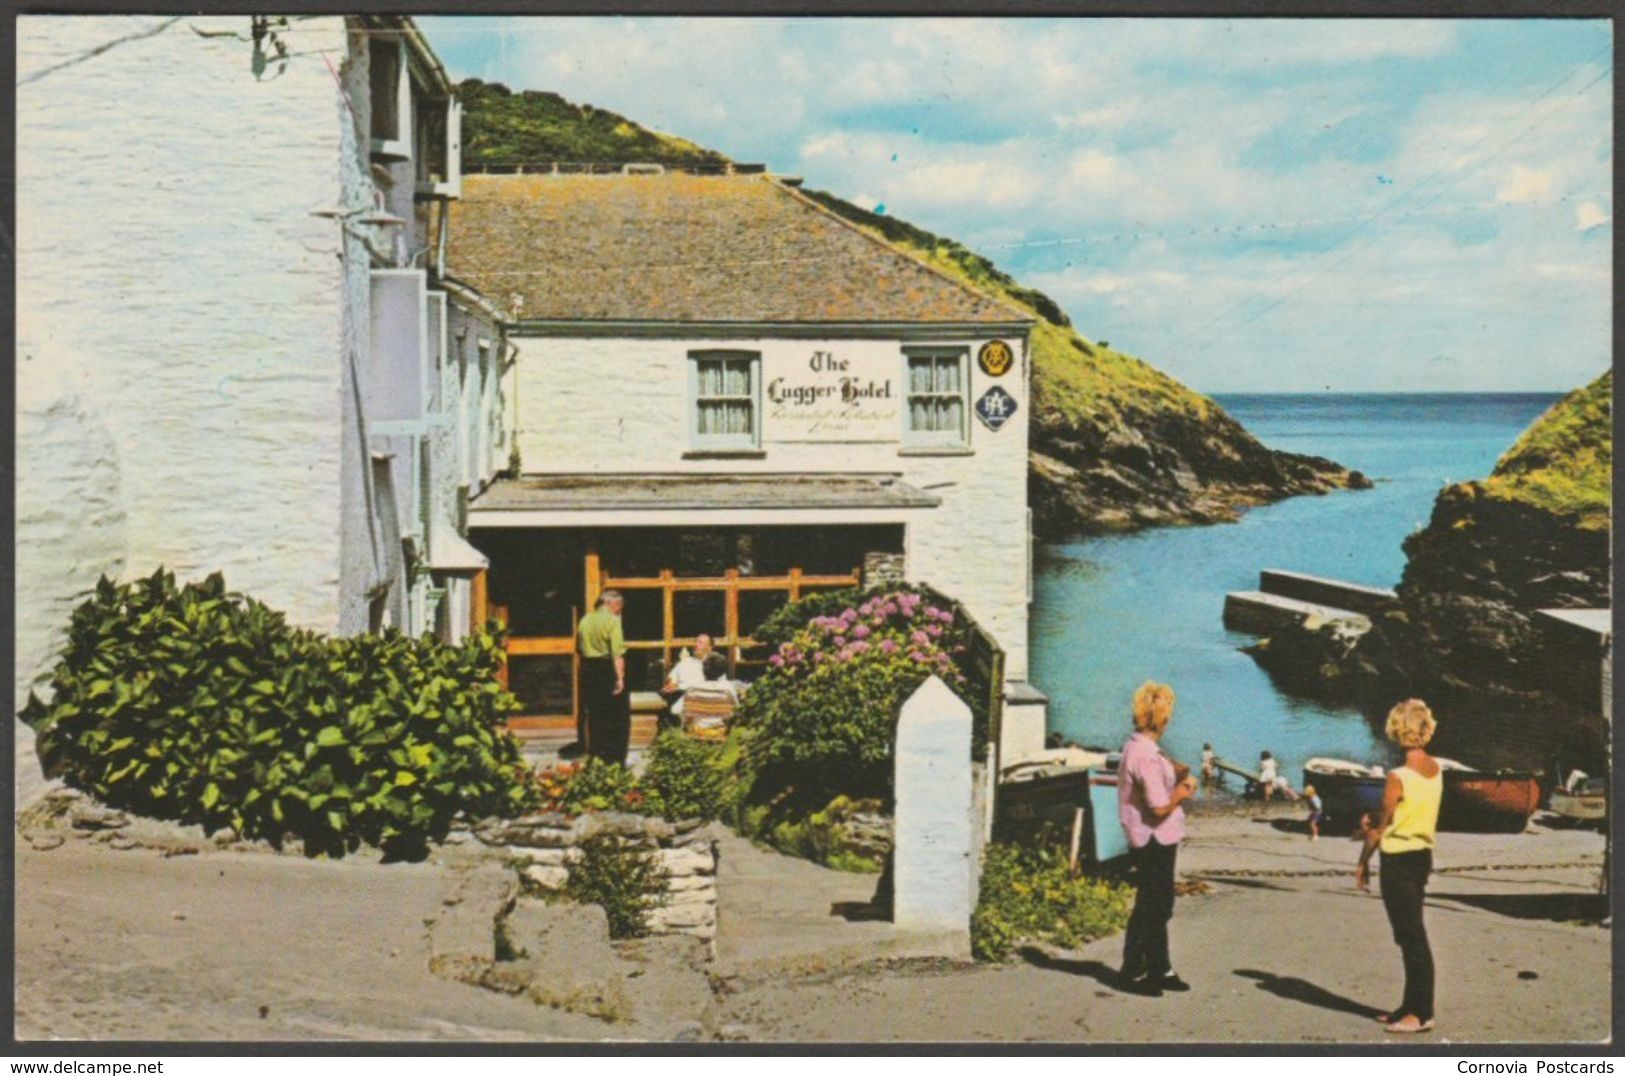 The Lugger Hotel Portloe Cornwall C 1960s Photo Precision Postcard For Sale On Delcampe Postcard Photo Hotel